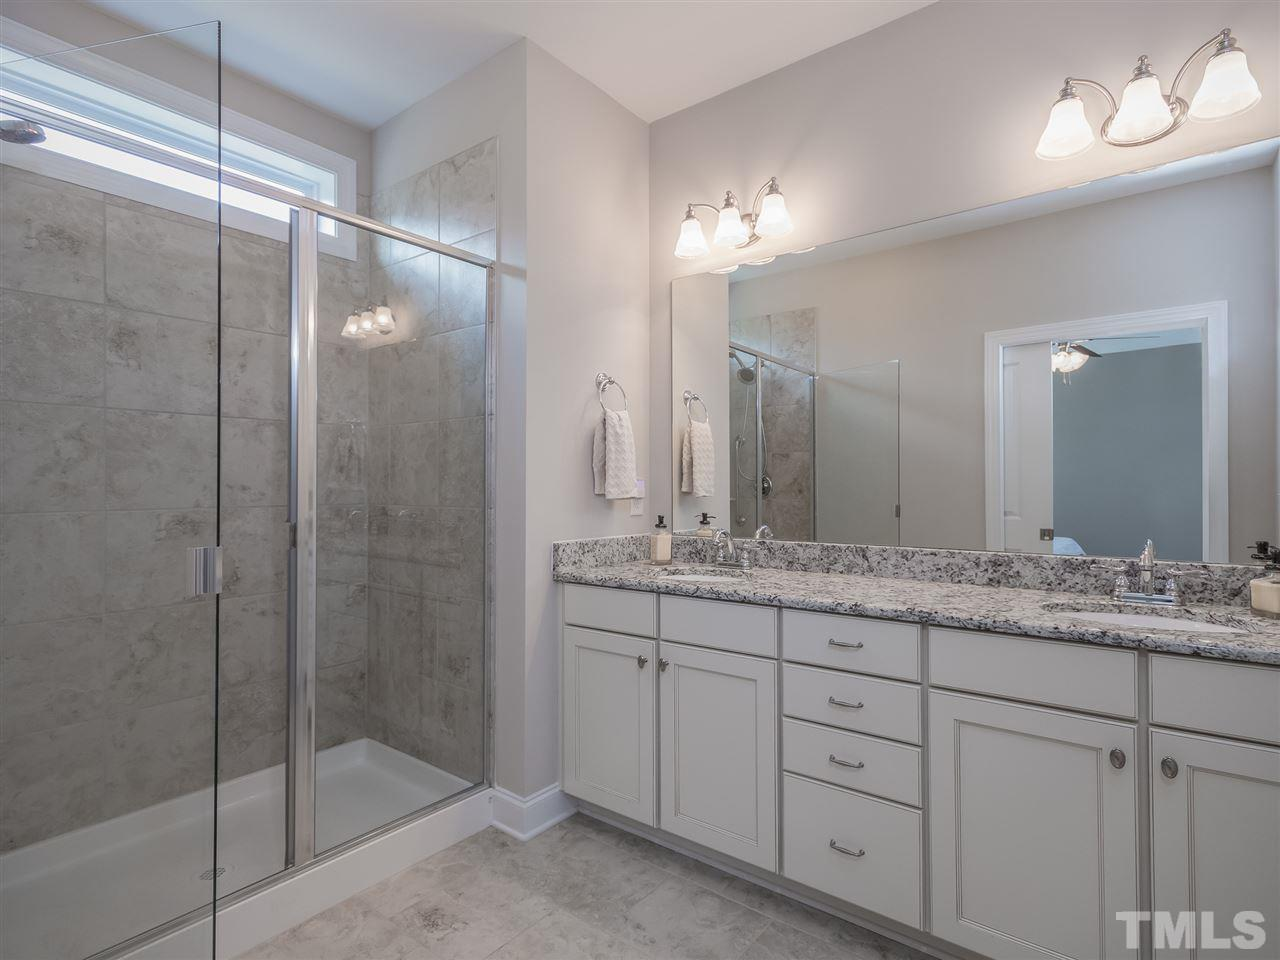 Owner's bath with walk in shower, dual vanities and granite counter tops. The high window brings in great natural light.